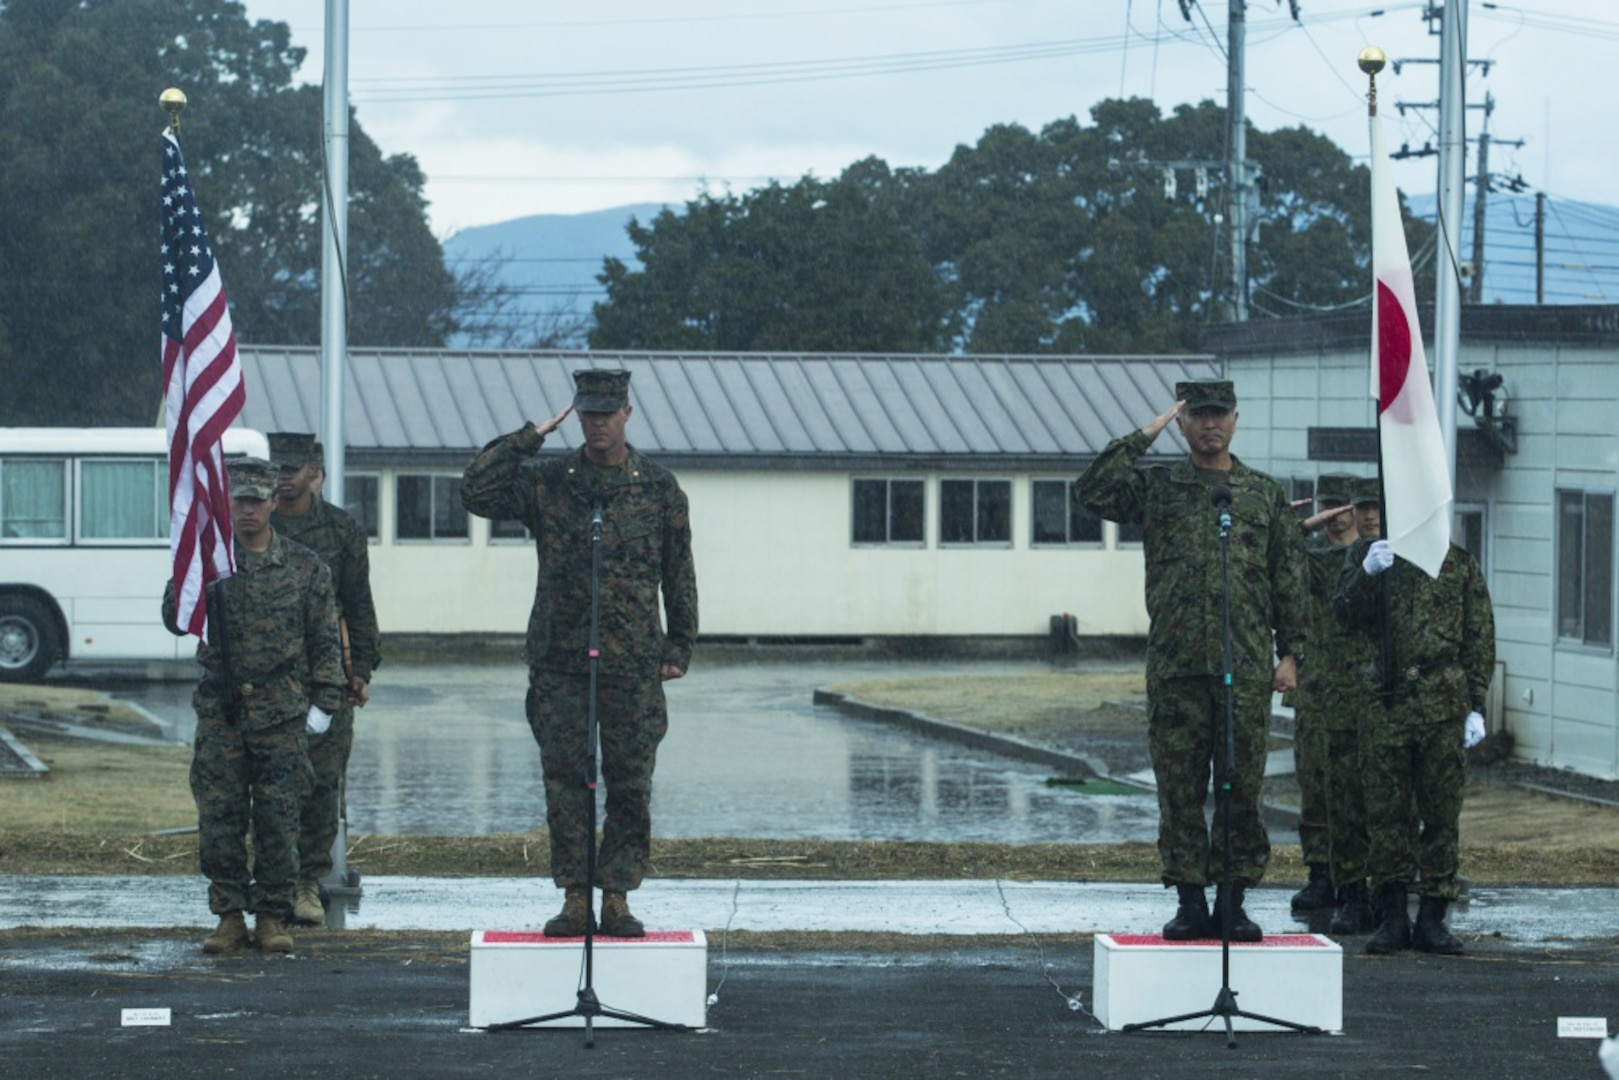 U.S. Marines, Japan Ground Self-Defense Force complete Exercise Forest Light Western Army